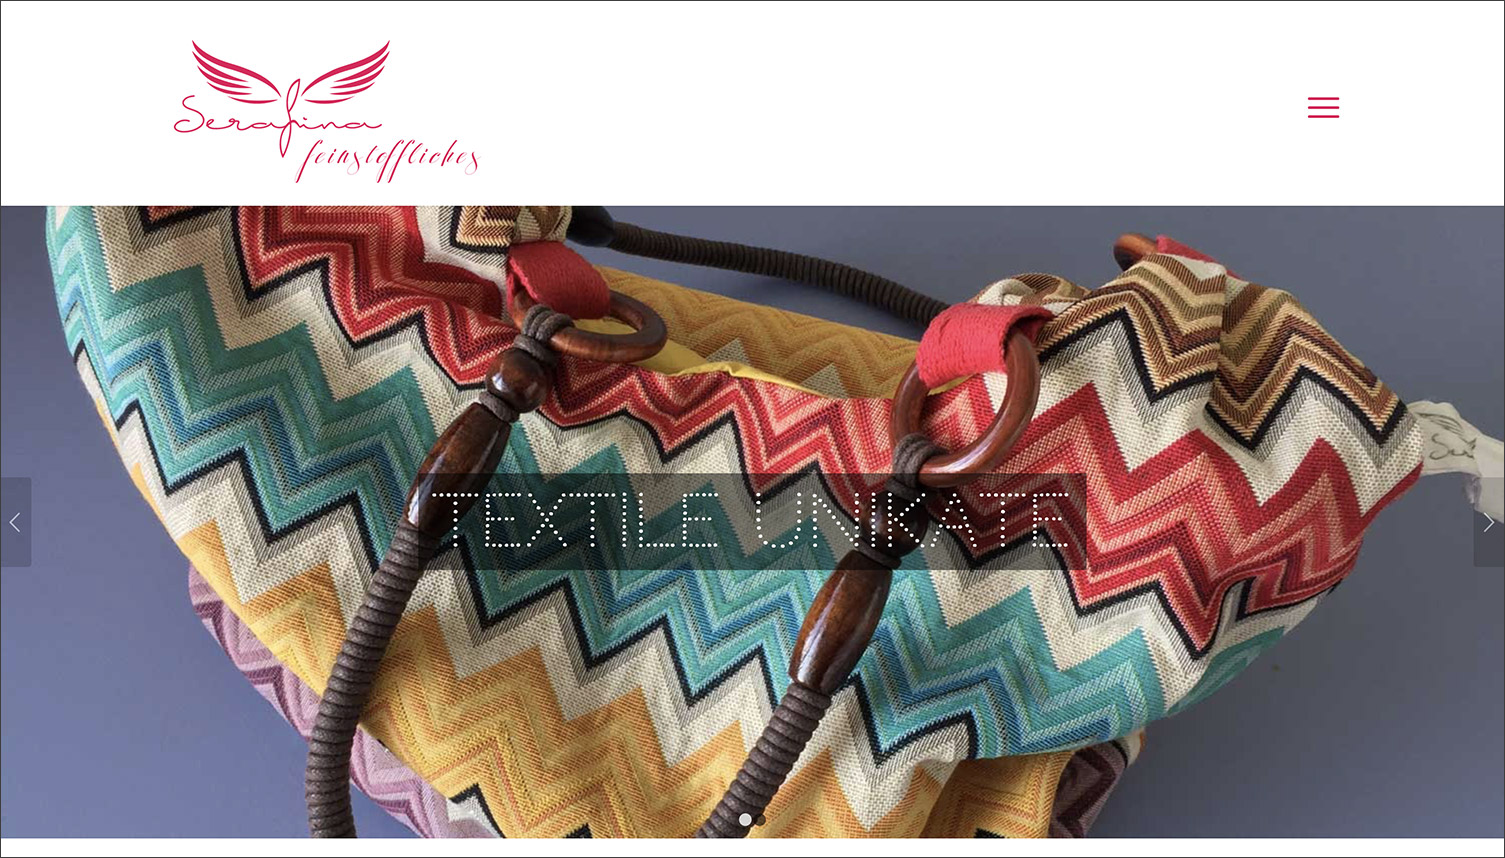 Textile Unikate, Belly Lovers